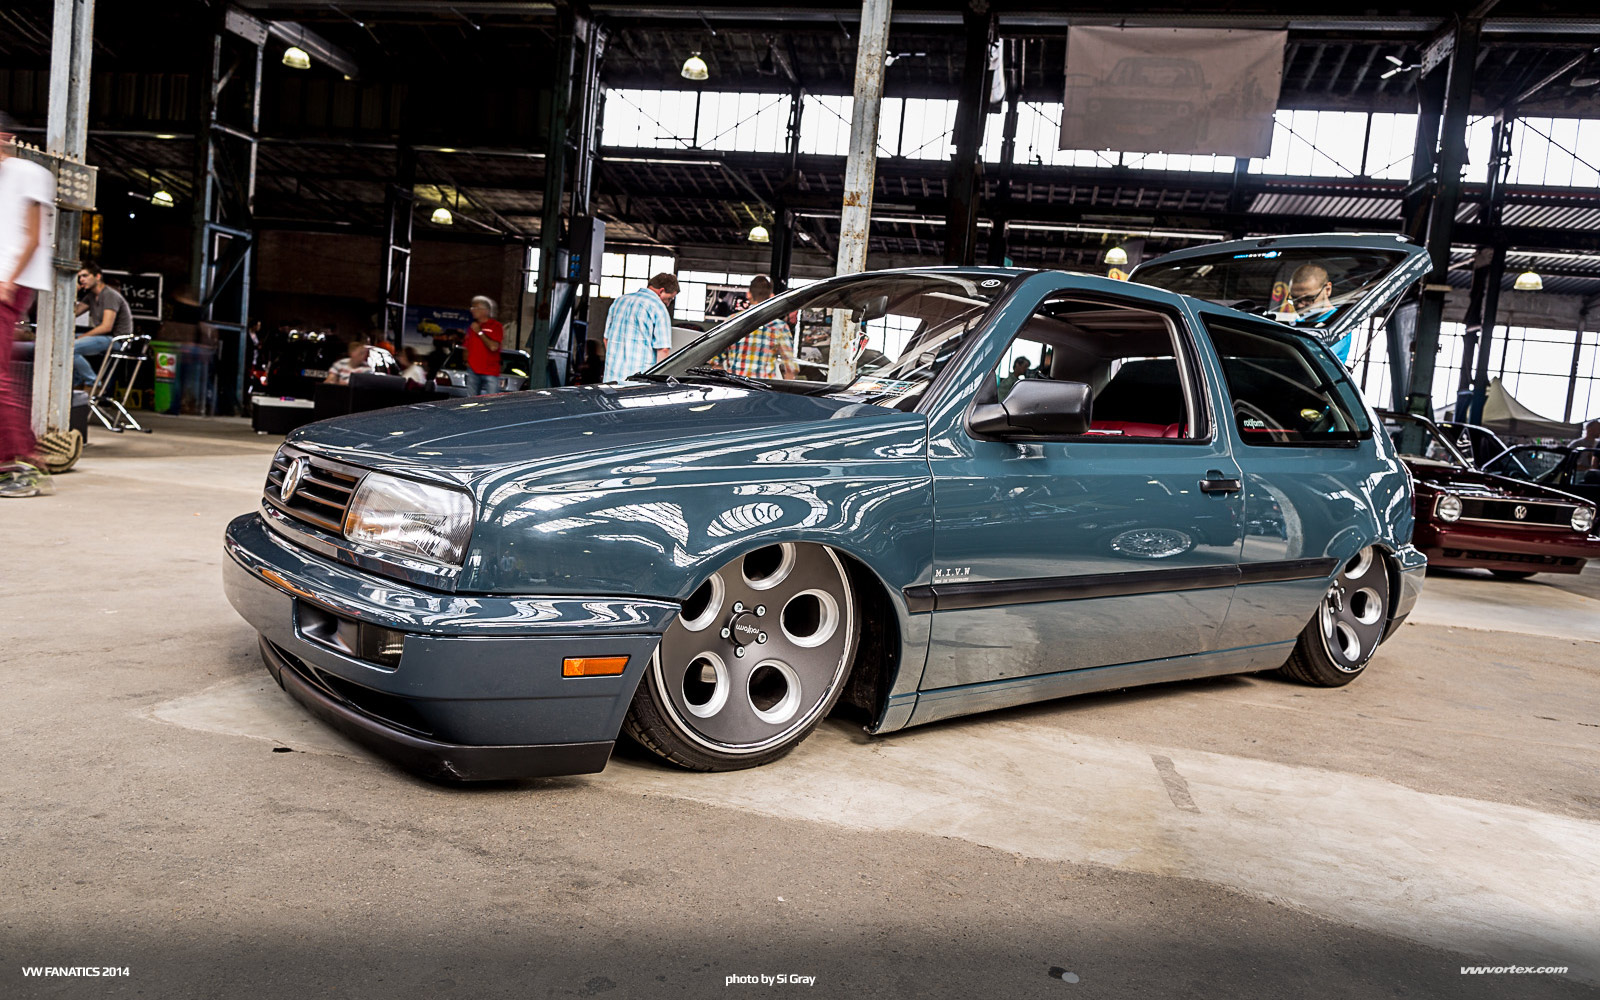 VWFanatics-2014-Si-Gray-401